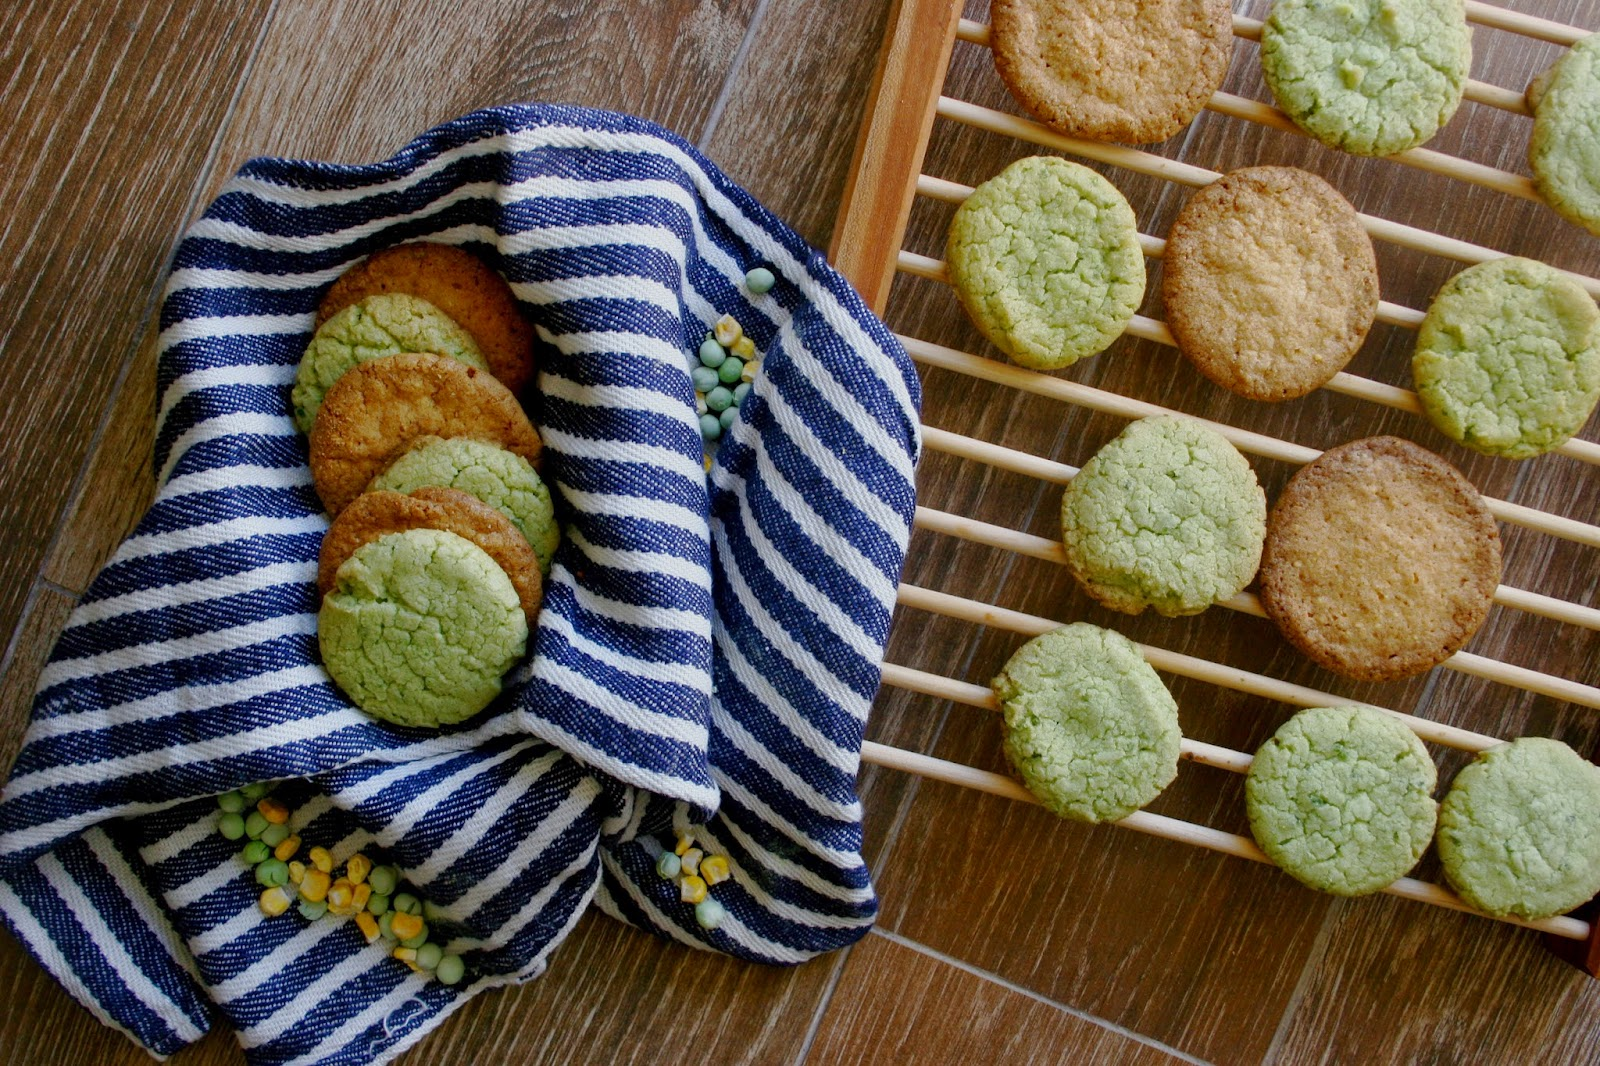 Pea & Corn Cookies